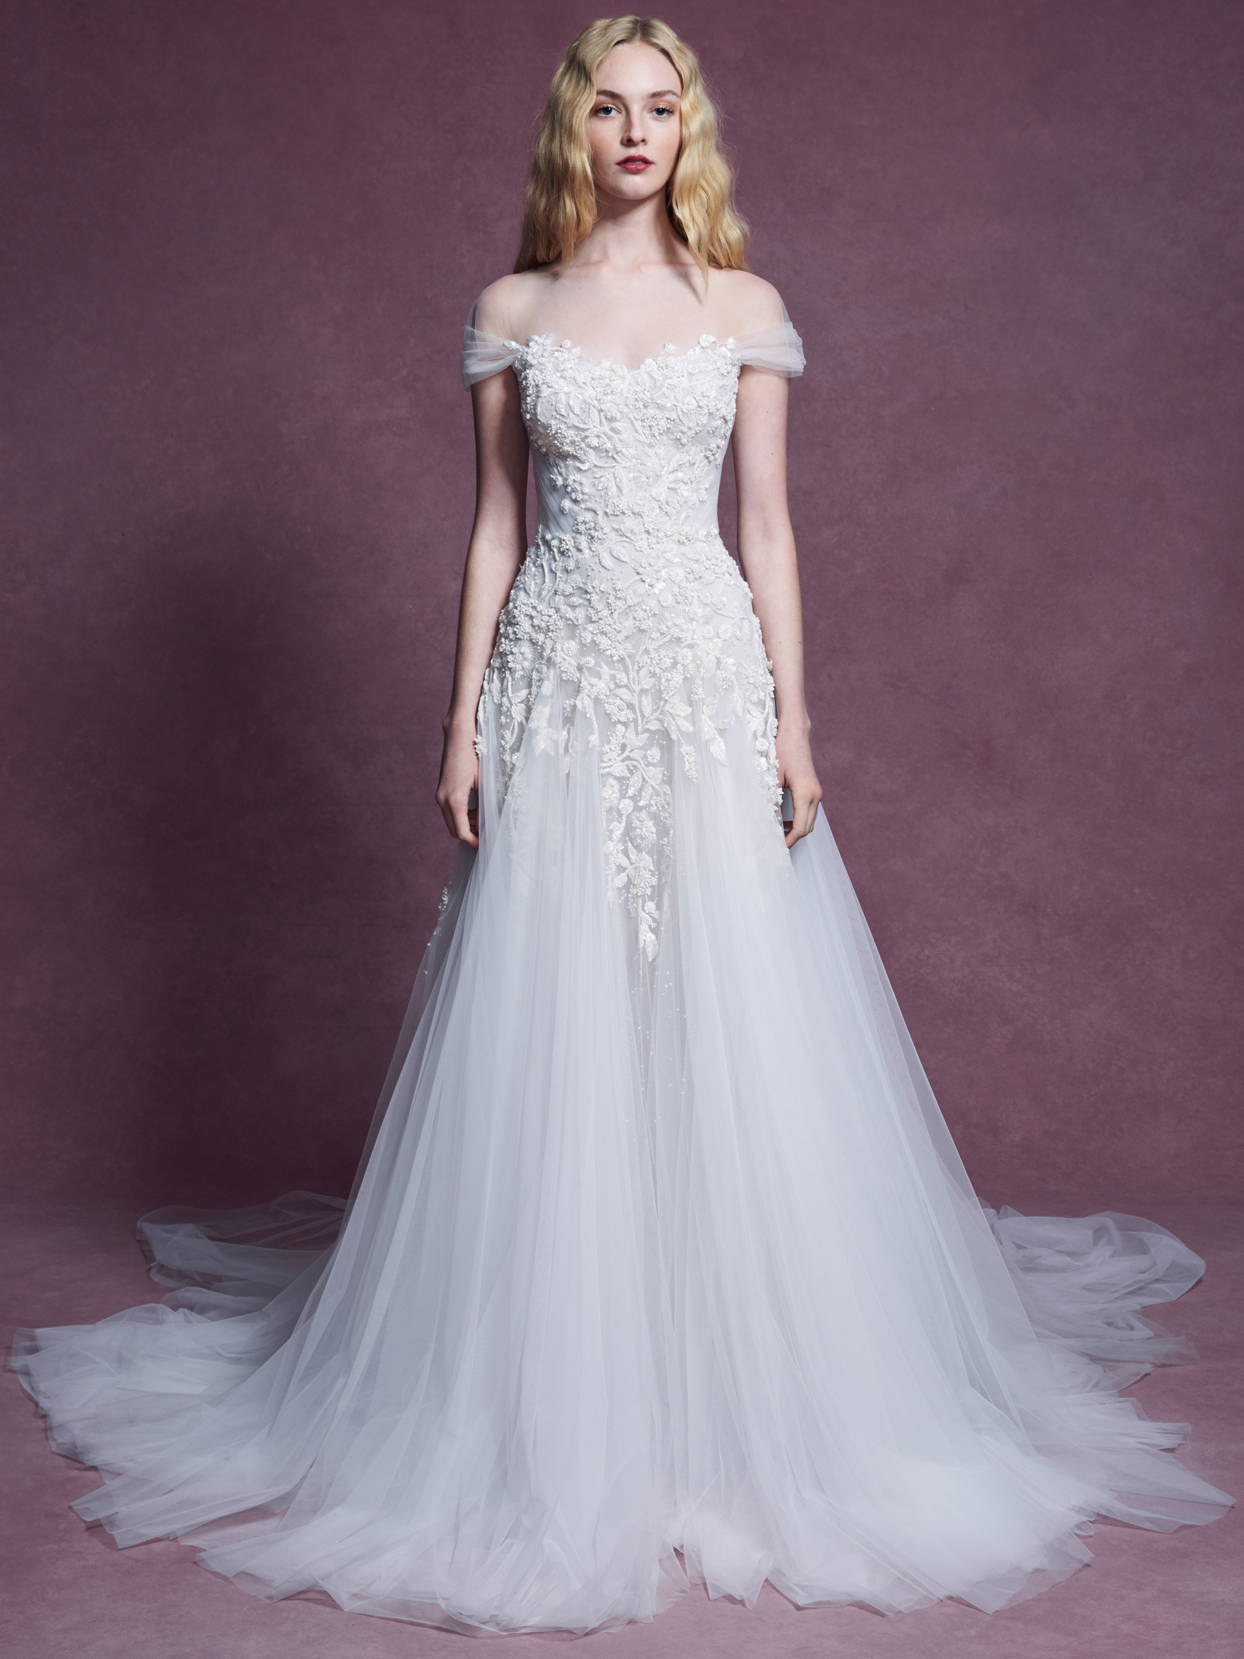 Marchesa 2020 Wedding Dress Collection Martha Stewart Weddings